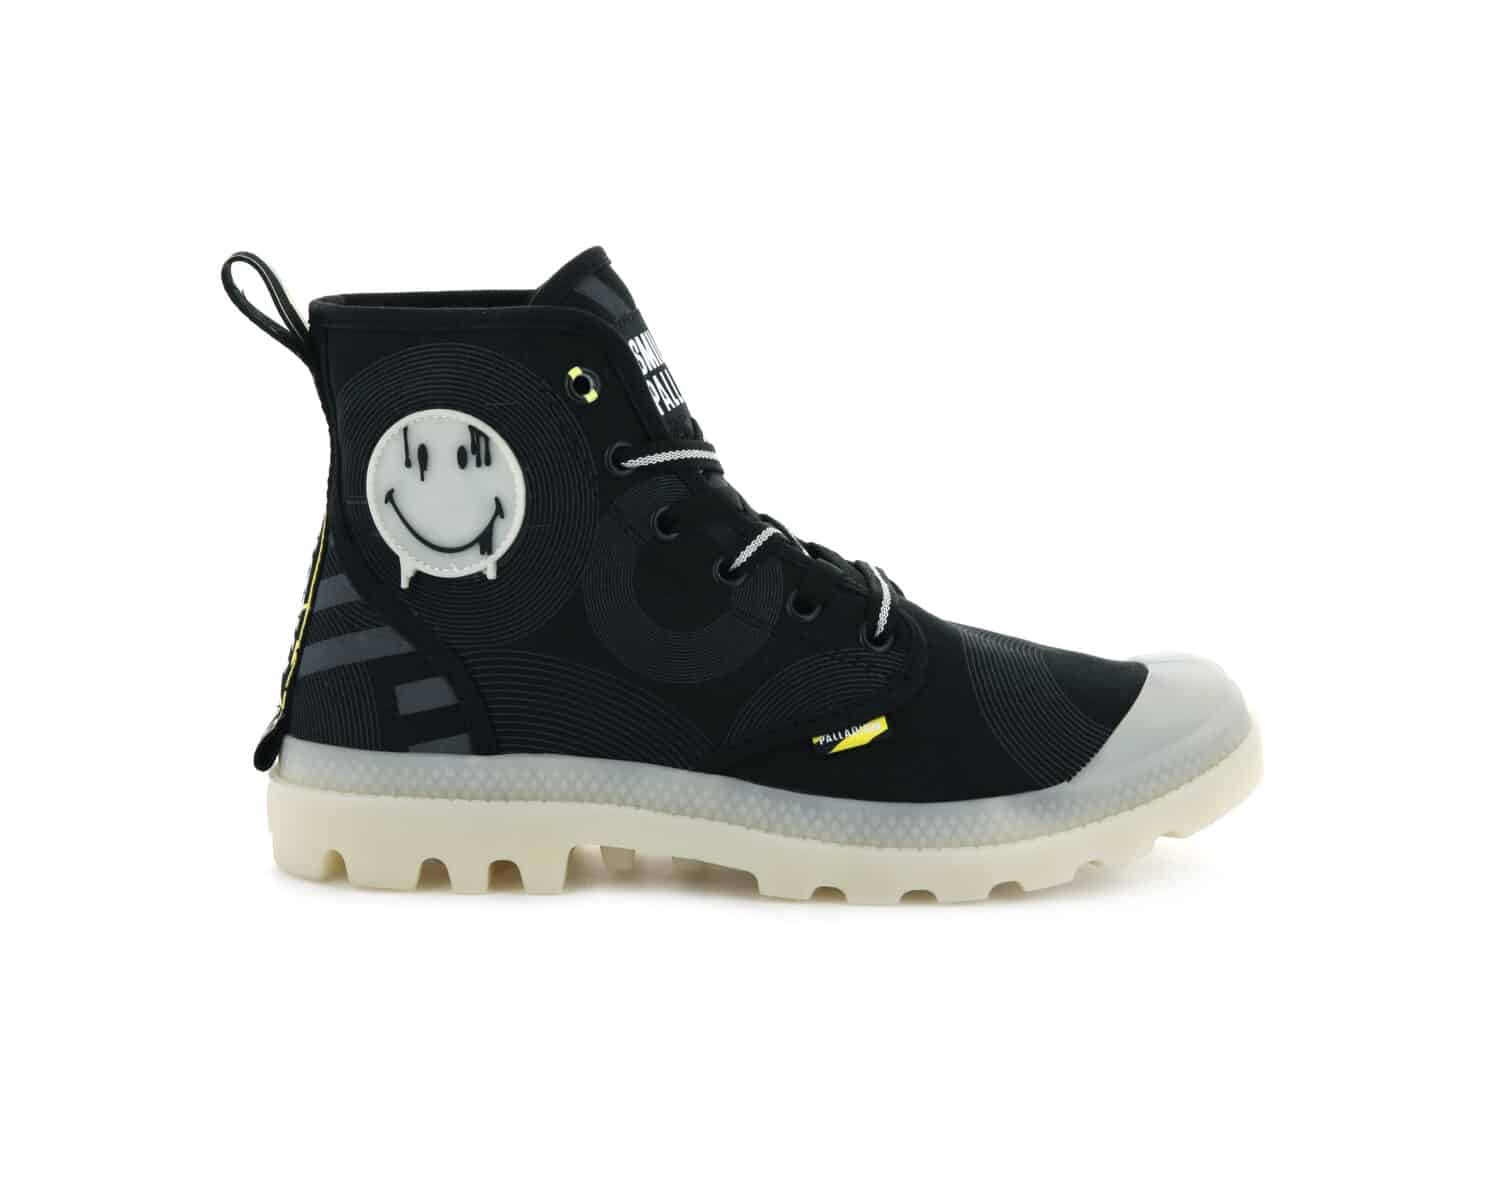 PALLADIUM x SMILEY baskets